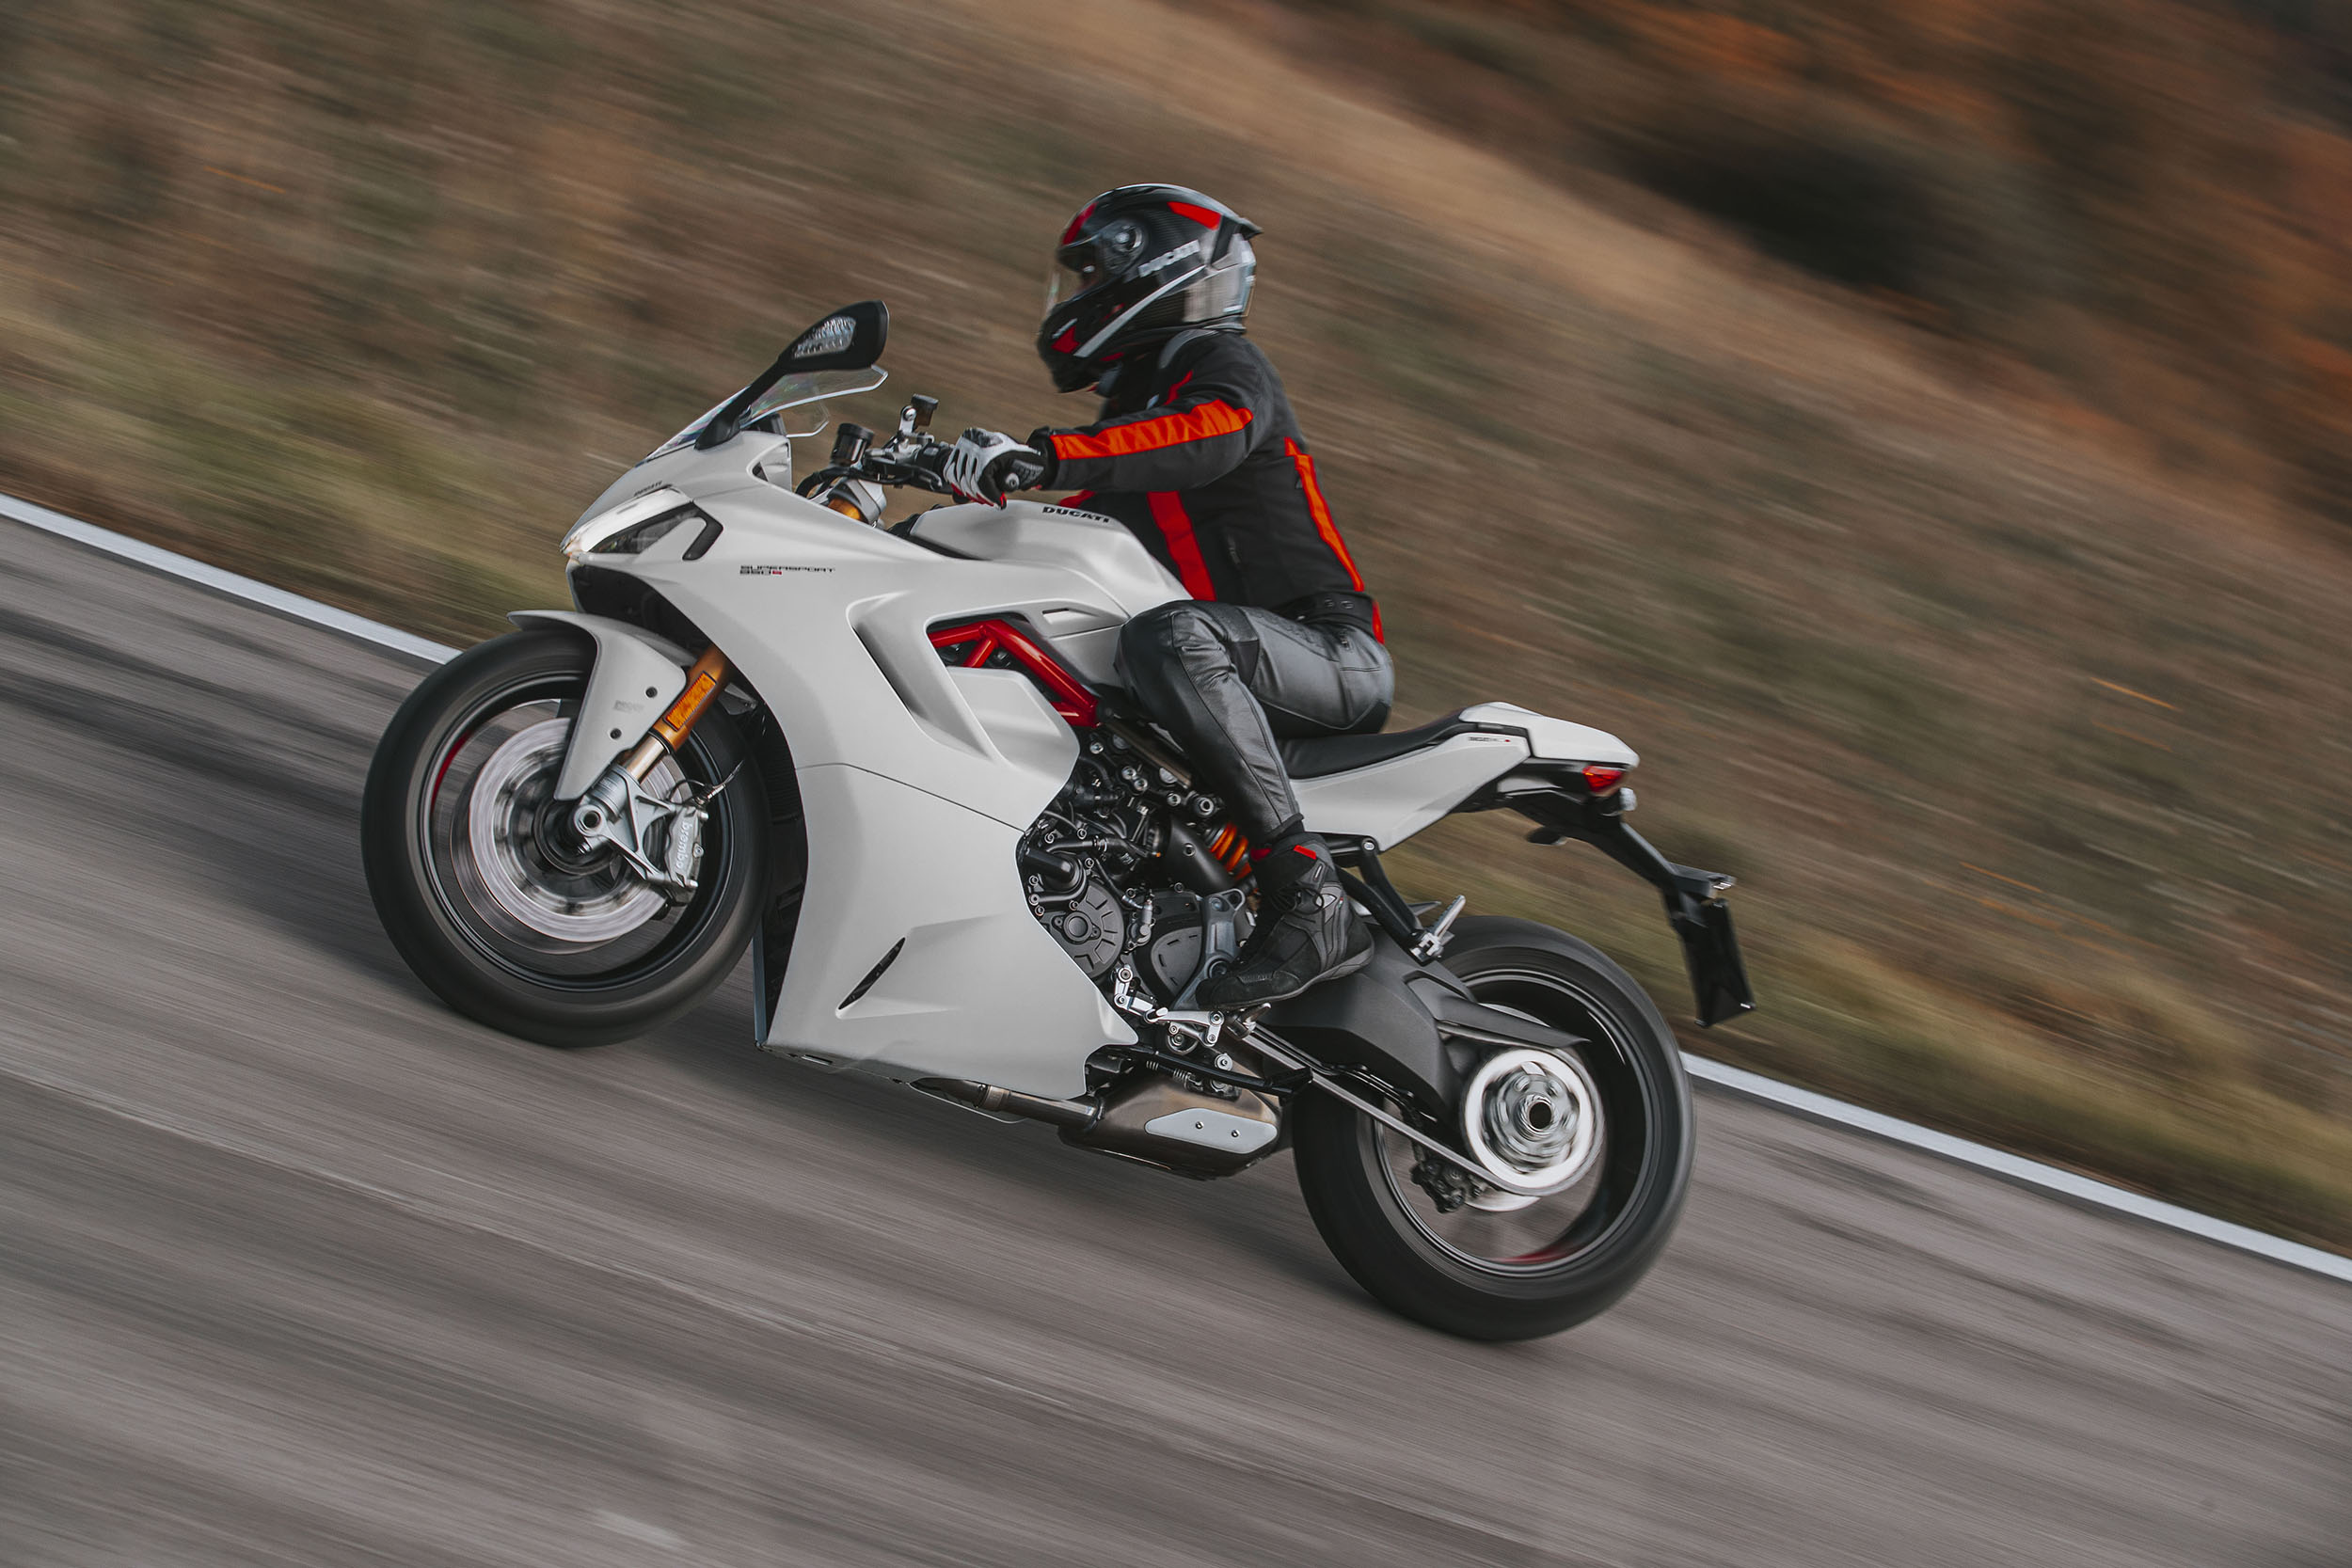 DUCATI_SUPERSPORT_950_S_AMBIENCE 0_UC210980_High